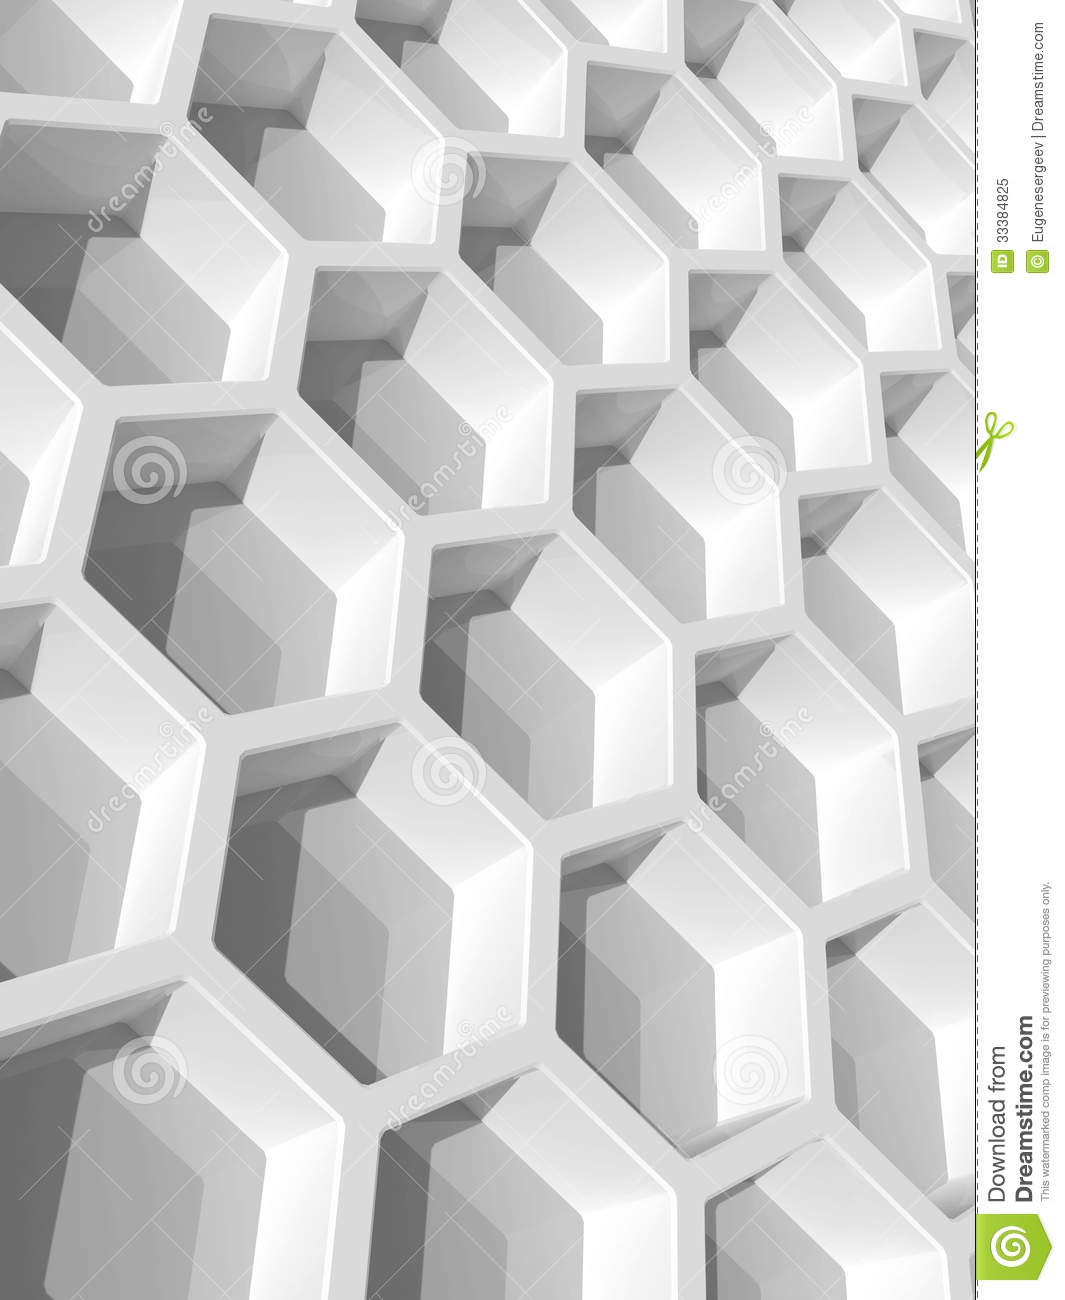 abstract honeycomb composition royalty - photo #7